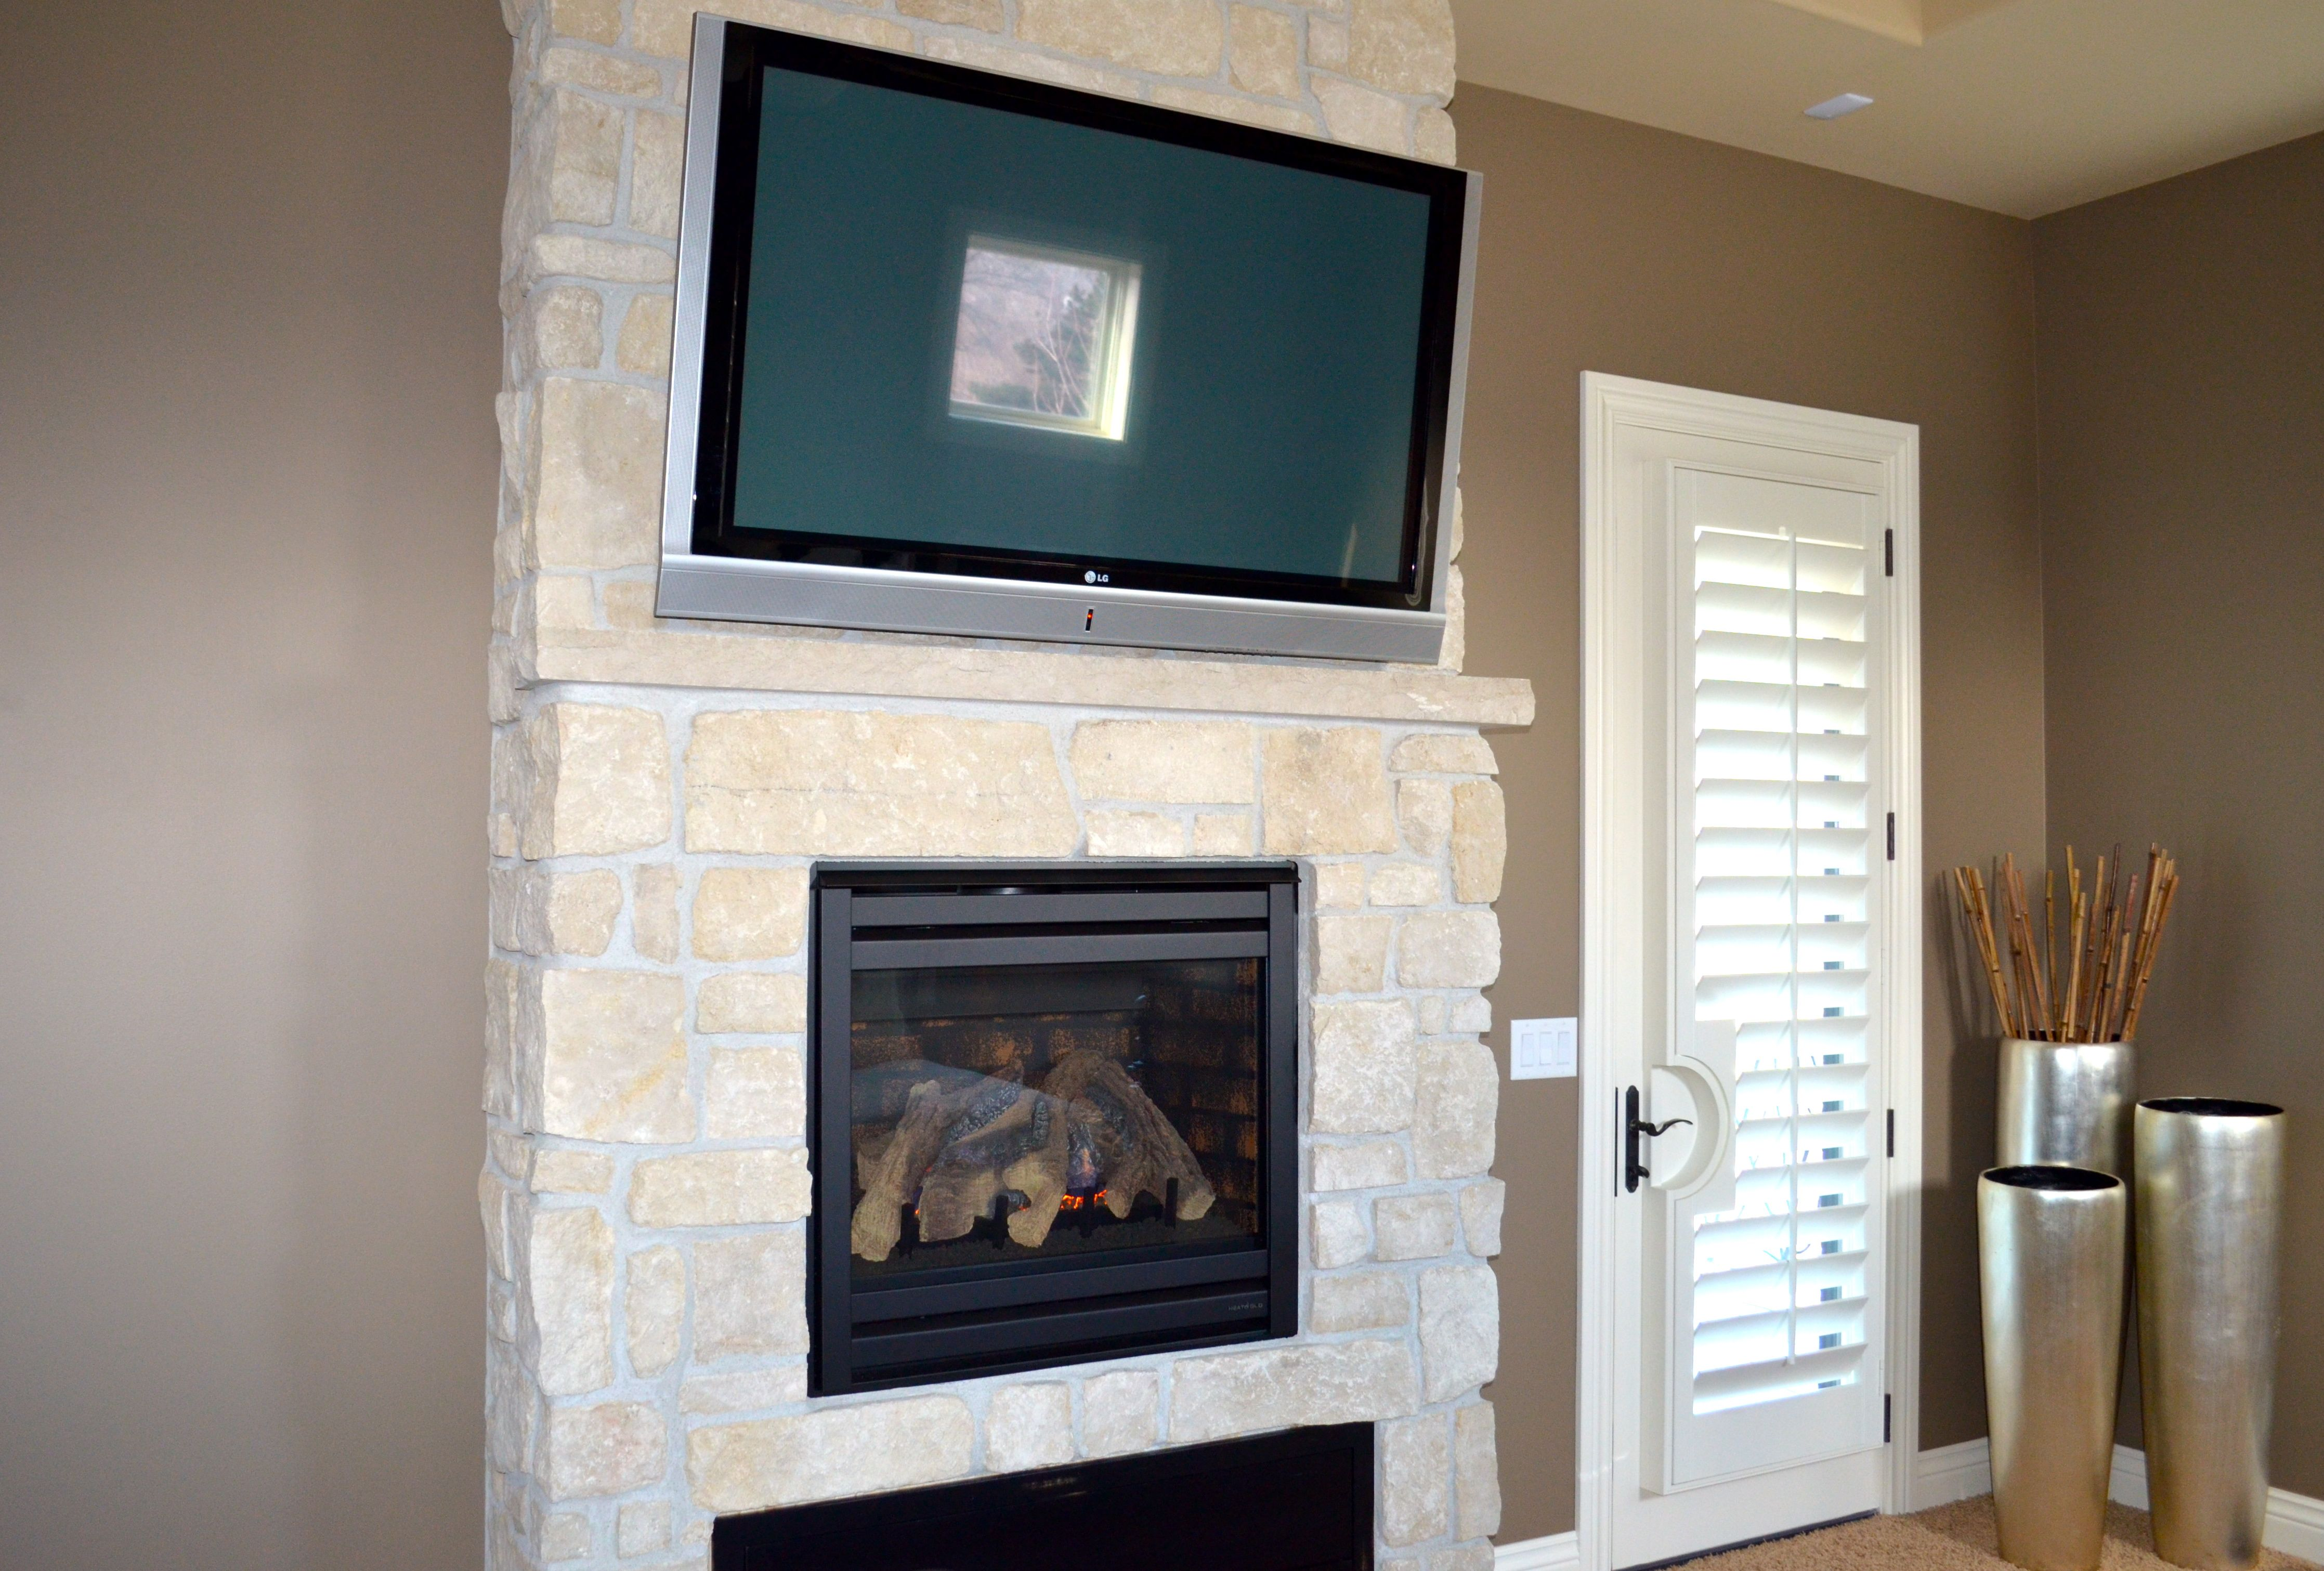 Master bedroom fireplace bathroom redo pinterest Master bedroom with fireplace images